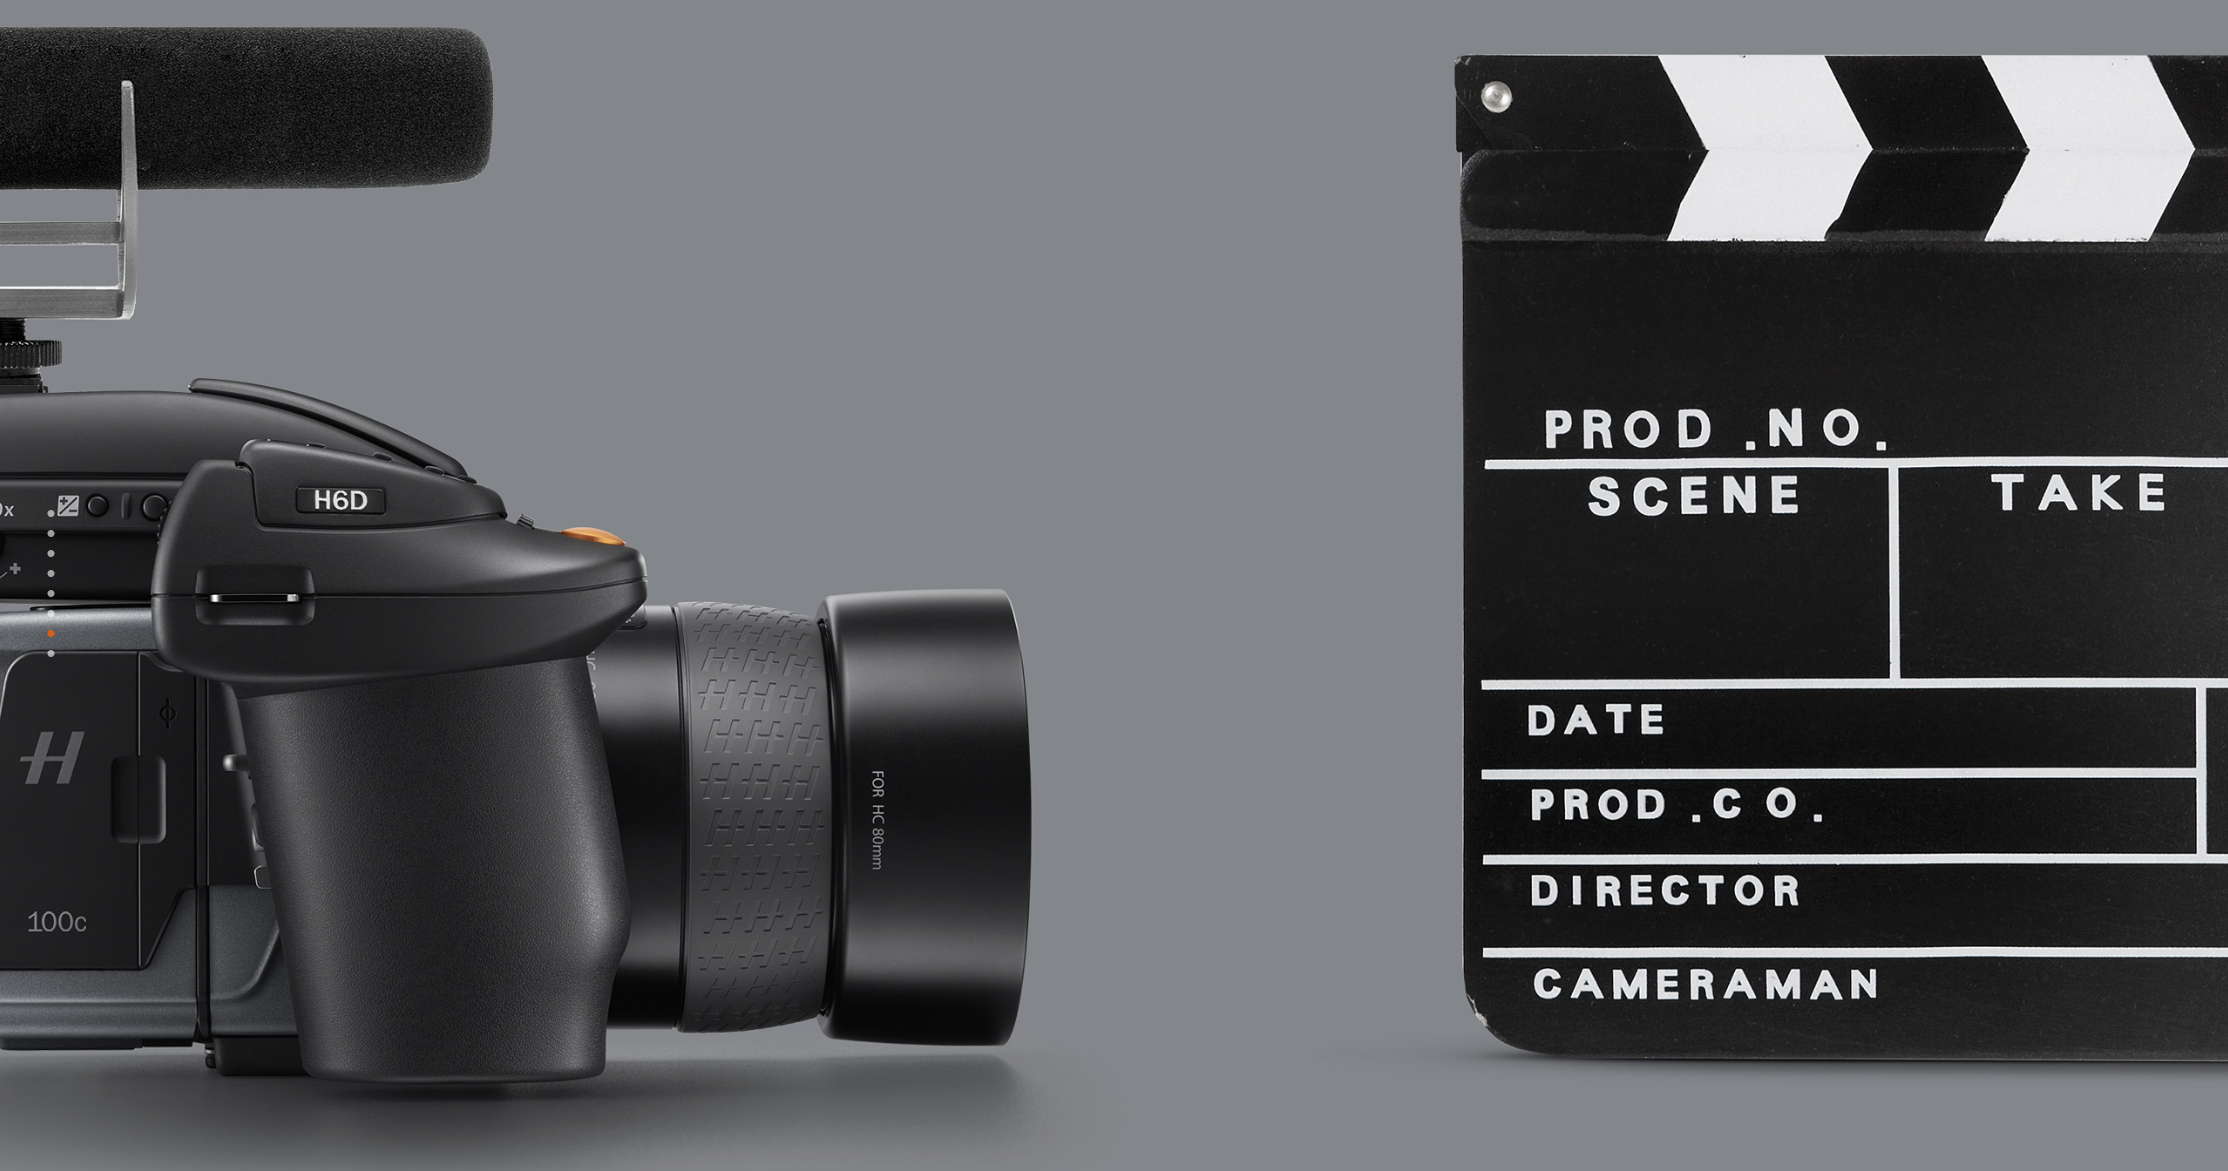 Hasselblad H6D Video Slate